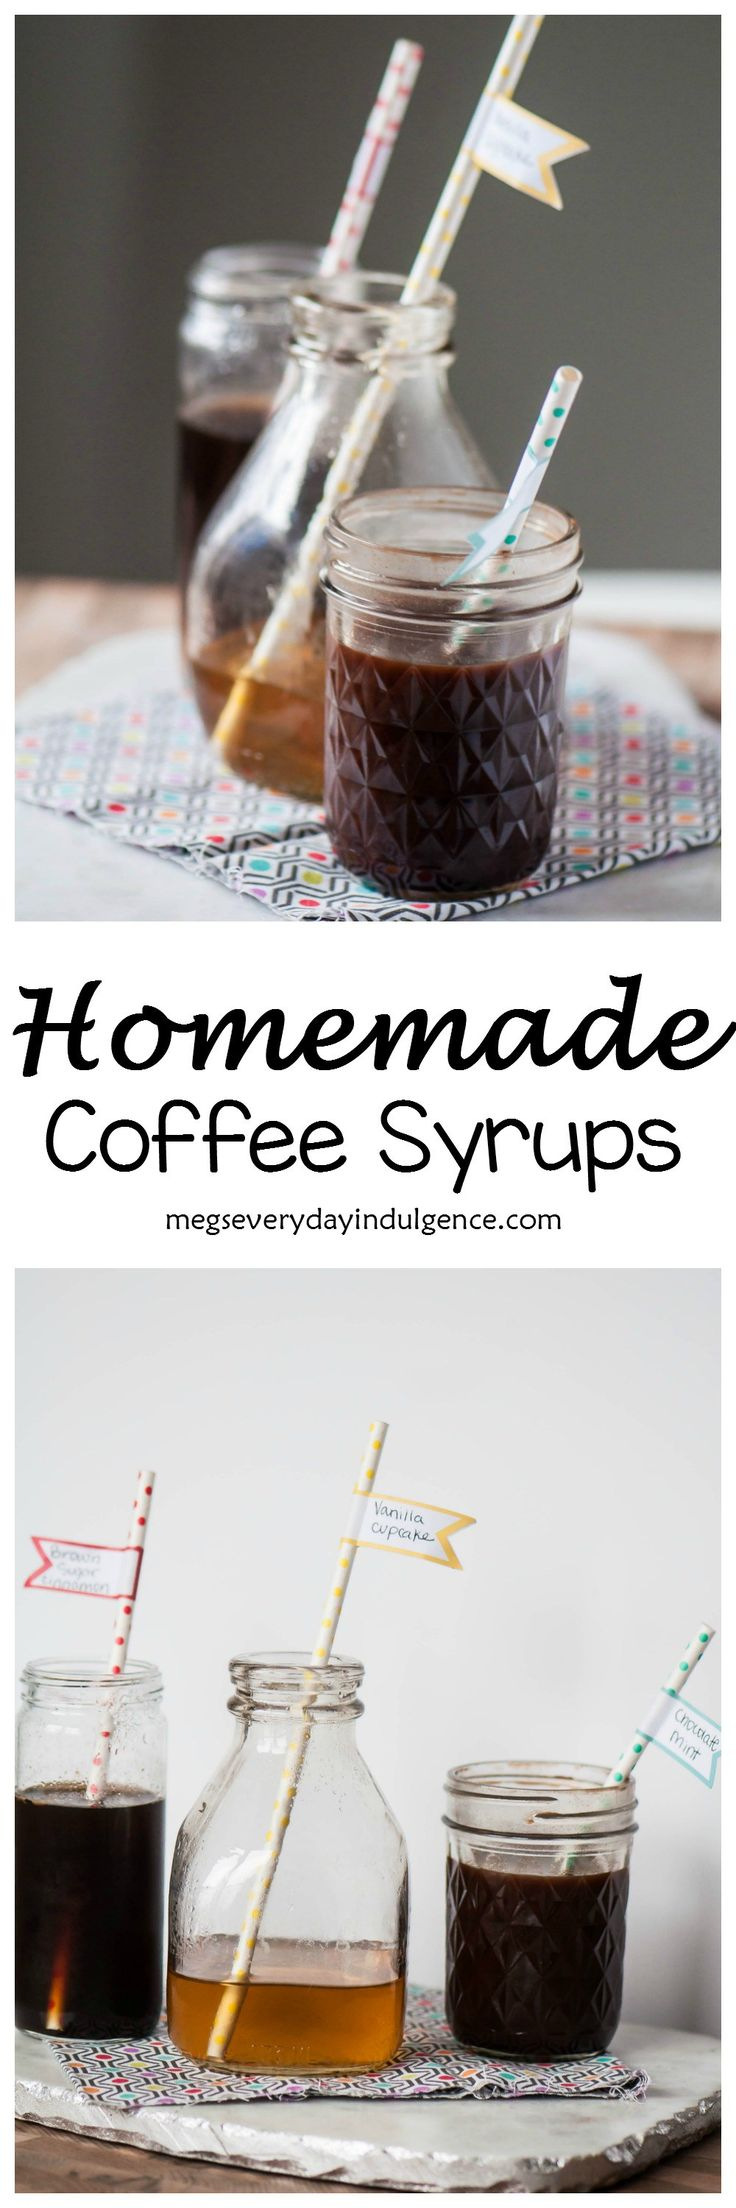 It's so simple, easy and affordable to make you own Homemade Coffee Syrups. Fun flavors of vanilla cupcake, chocolate mint and brown sugar cinnamon make coffee house drinks on a dime.